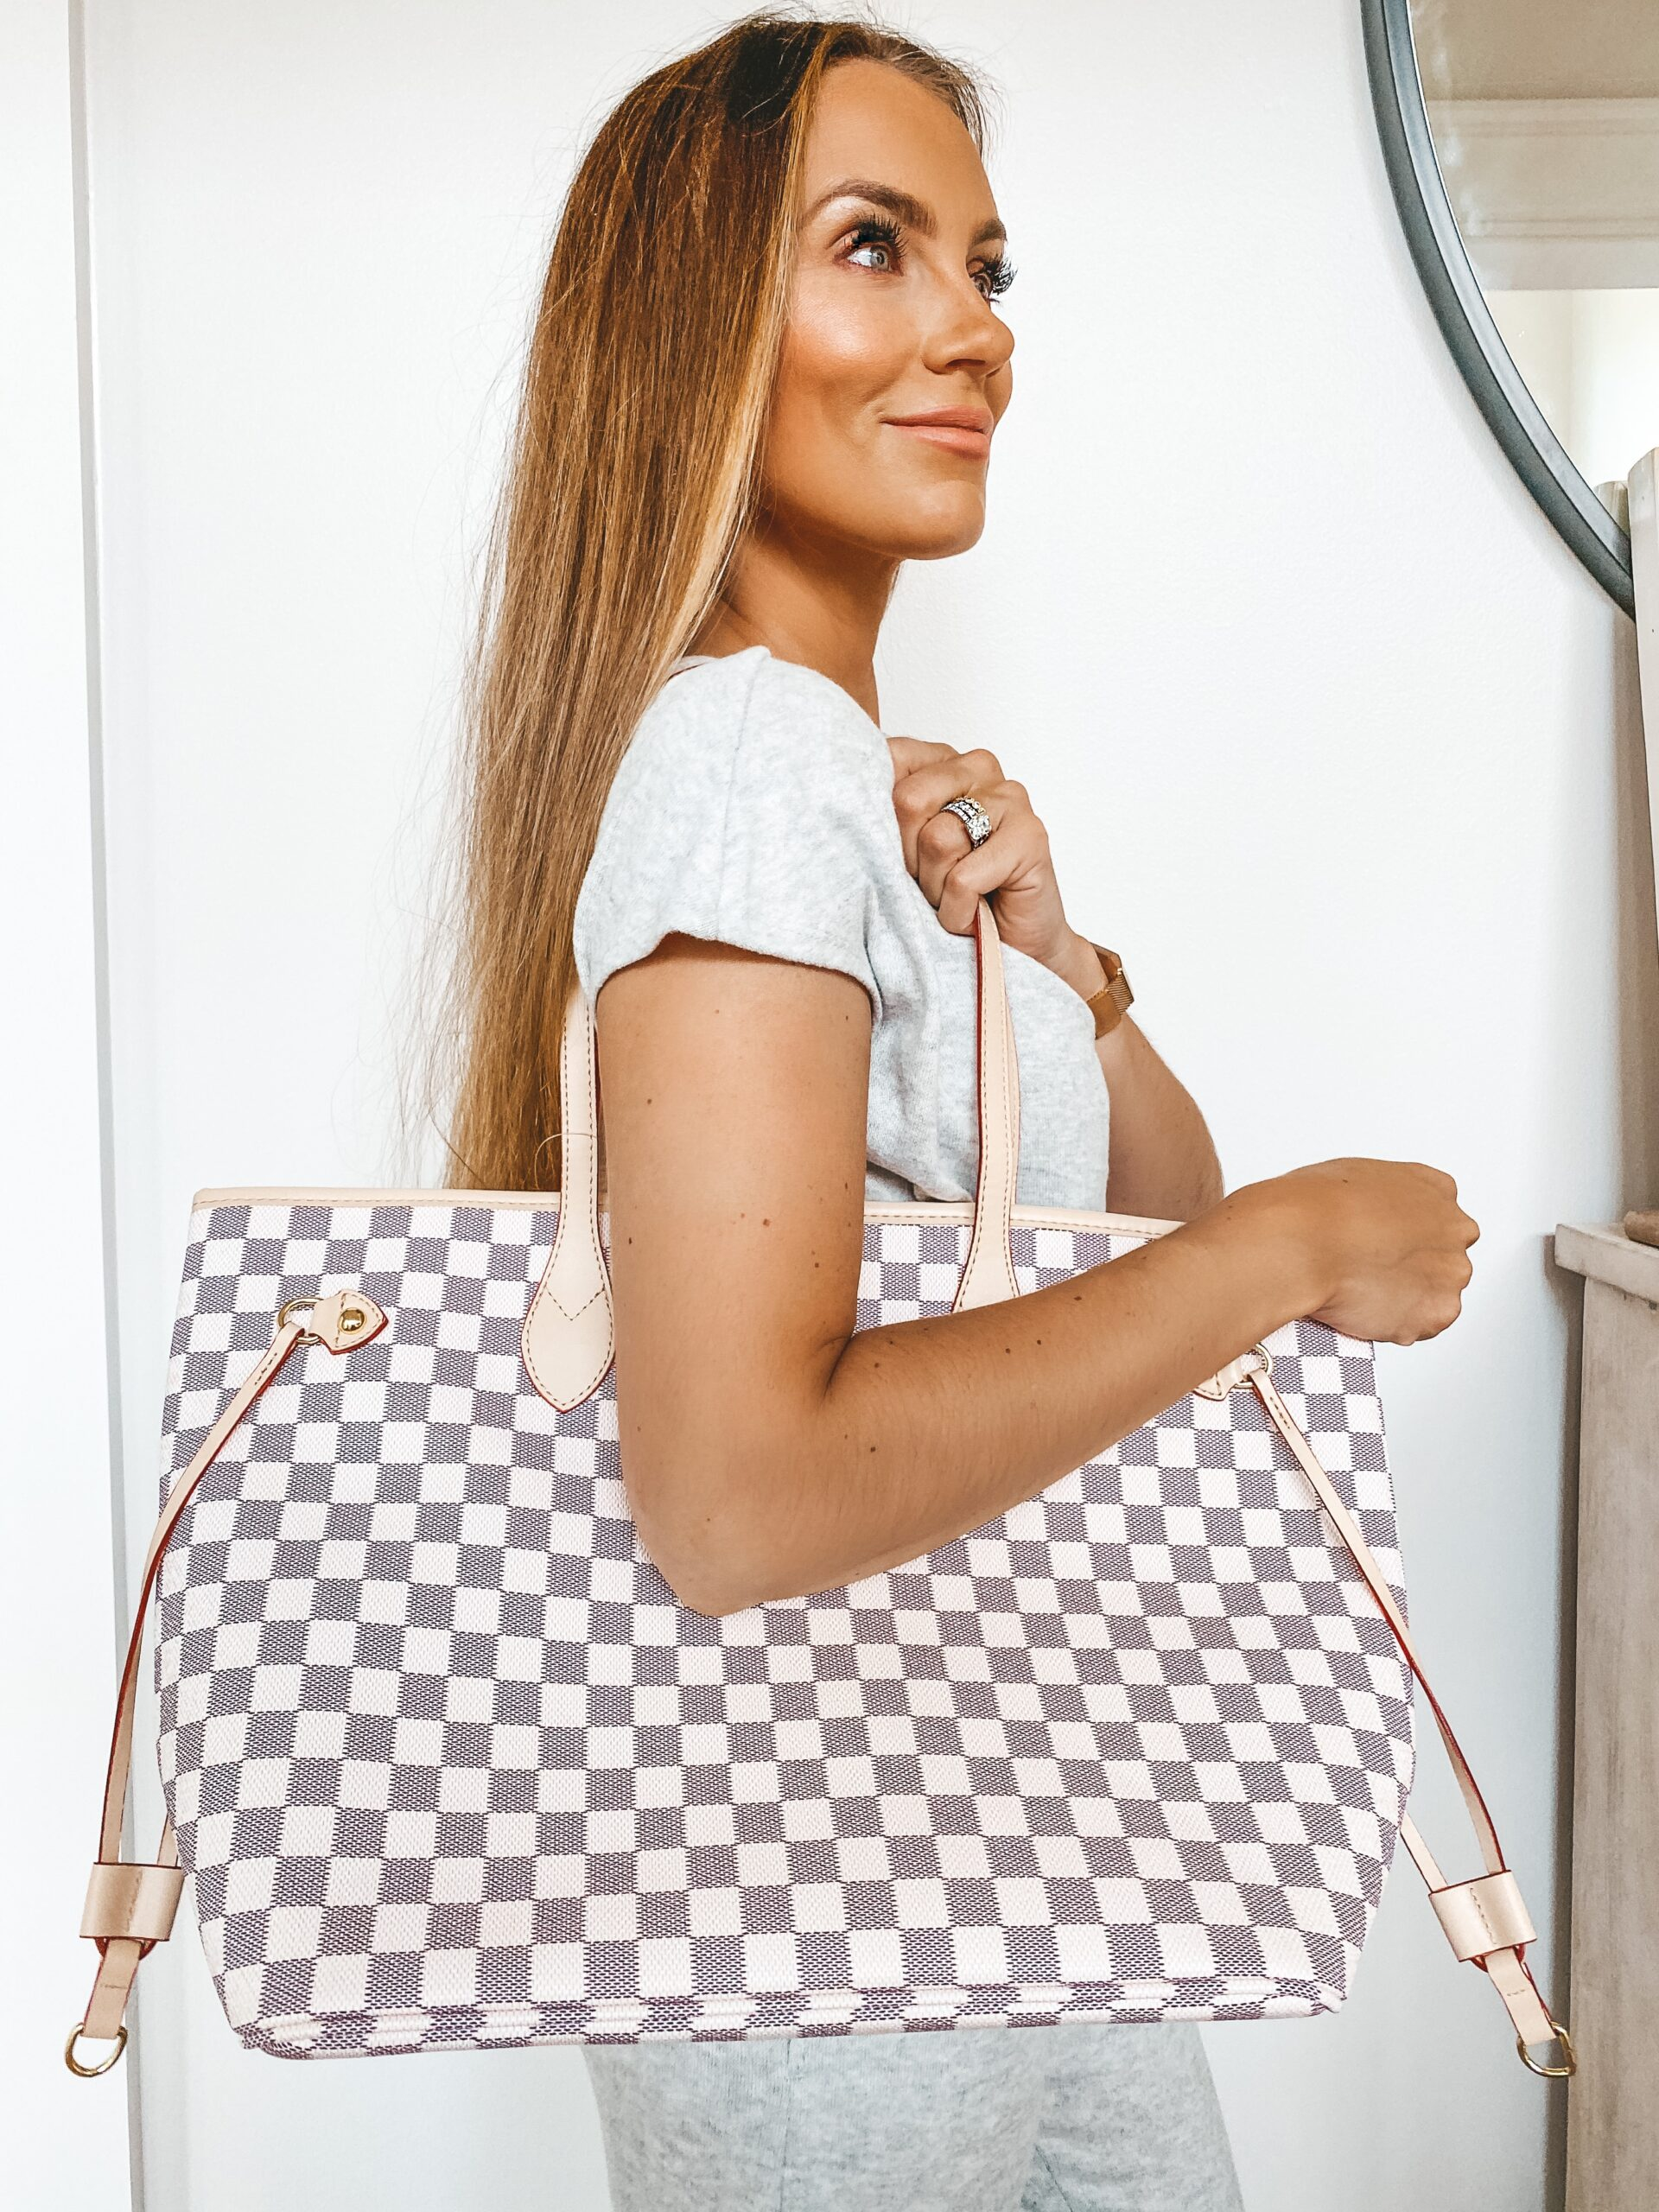 $1500 Louis Vuitton Bag vs $50 Walmart Dupe